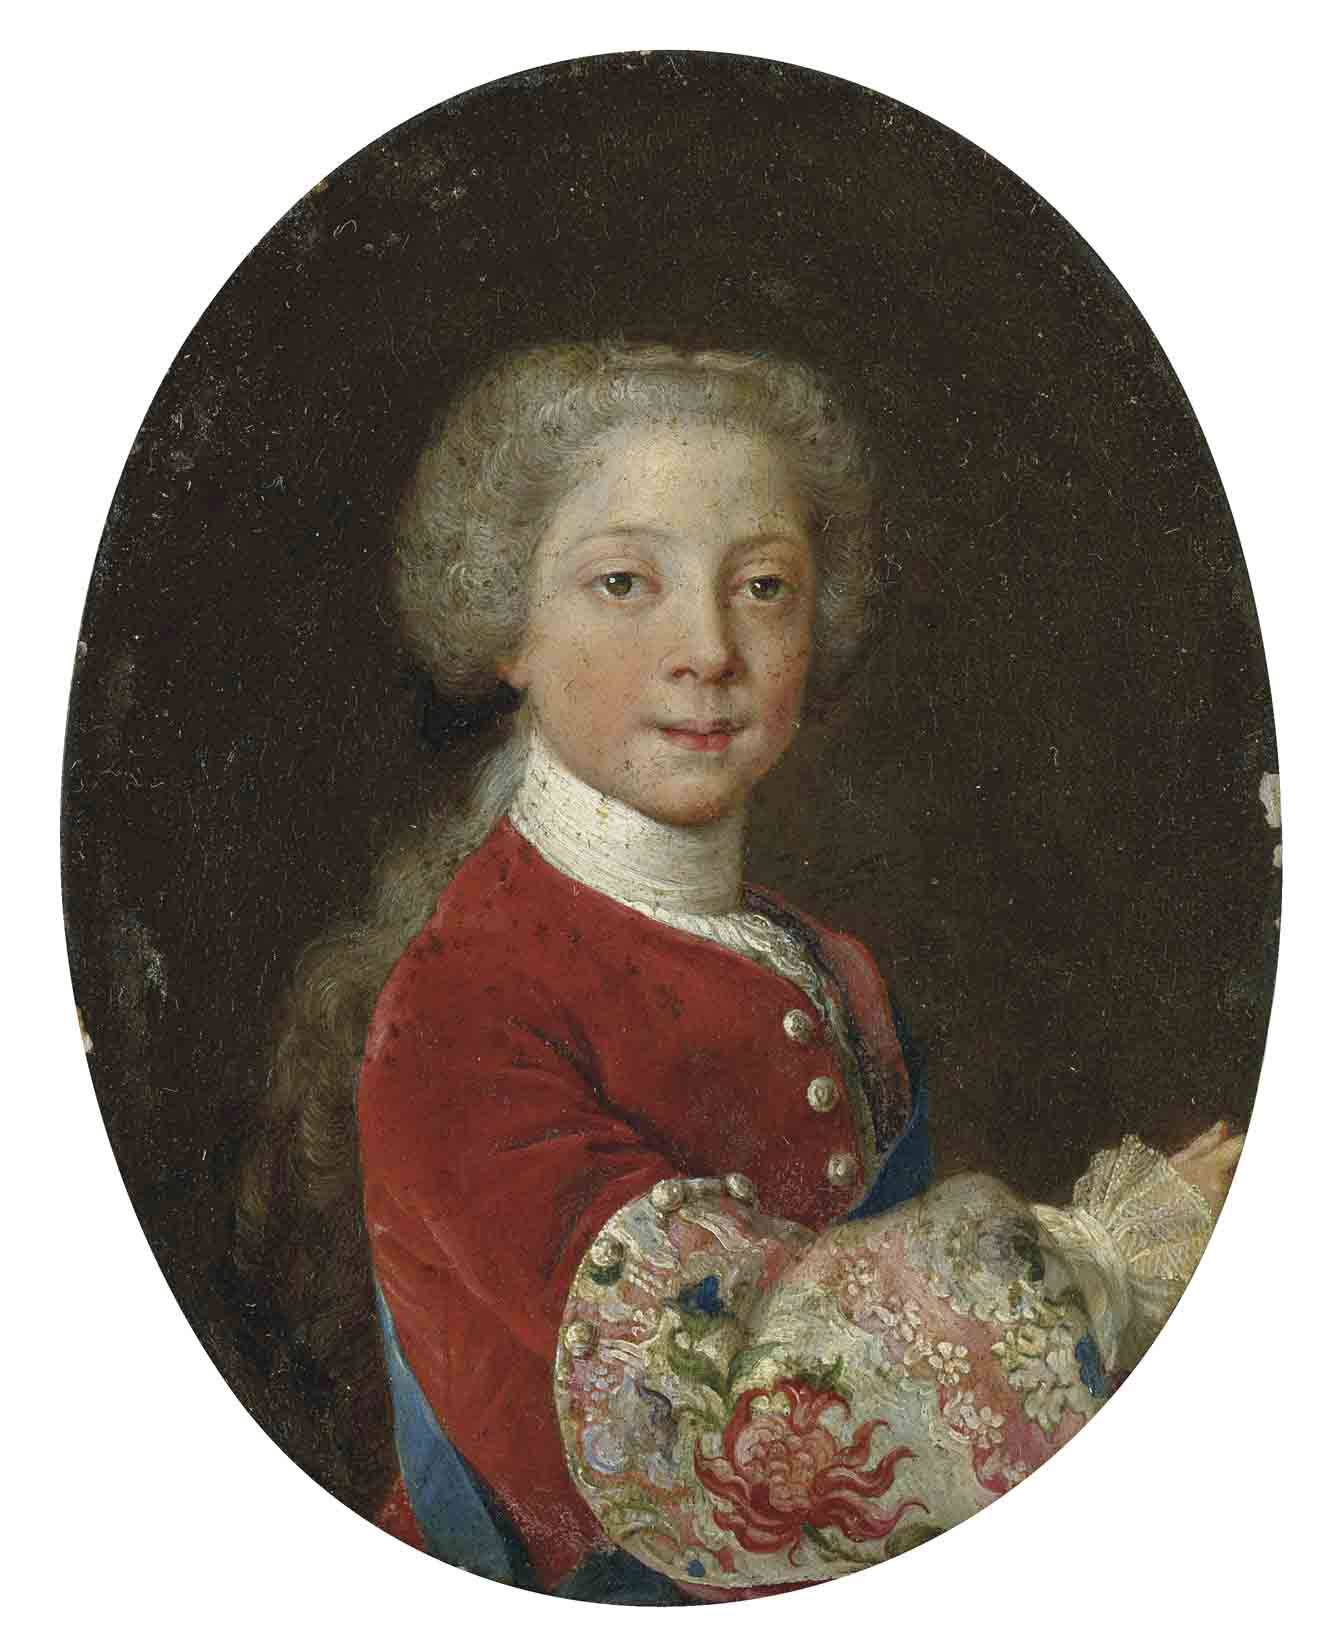 Portrait of Prince Henry Benedict Stuart (1725-1807) as a boy, half-length, in a red velvet coat with elaborately embroidered sleeve with thistle motif, with the sash of the Order of the Garter